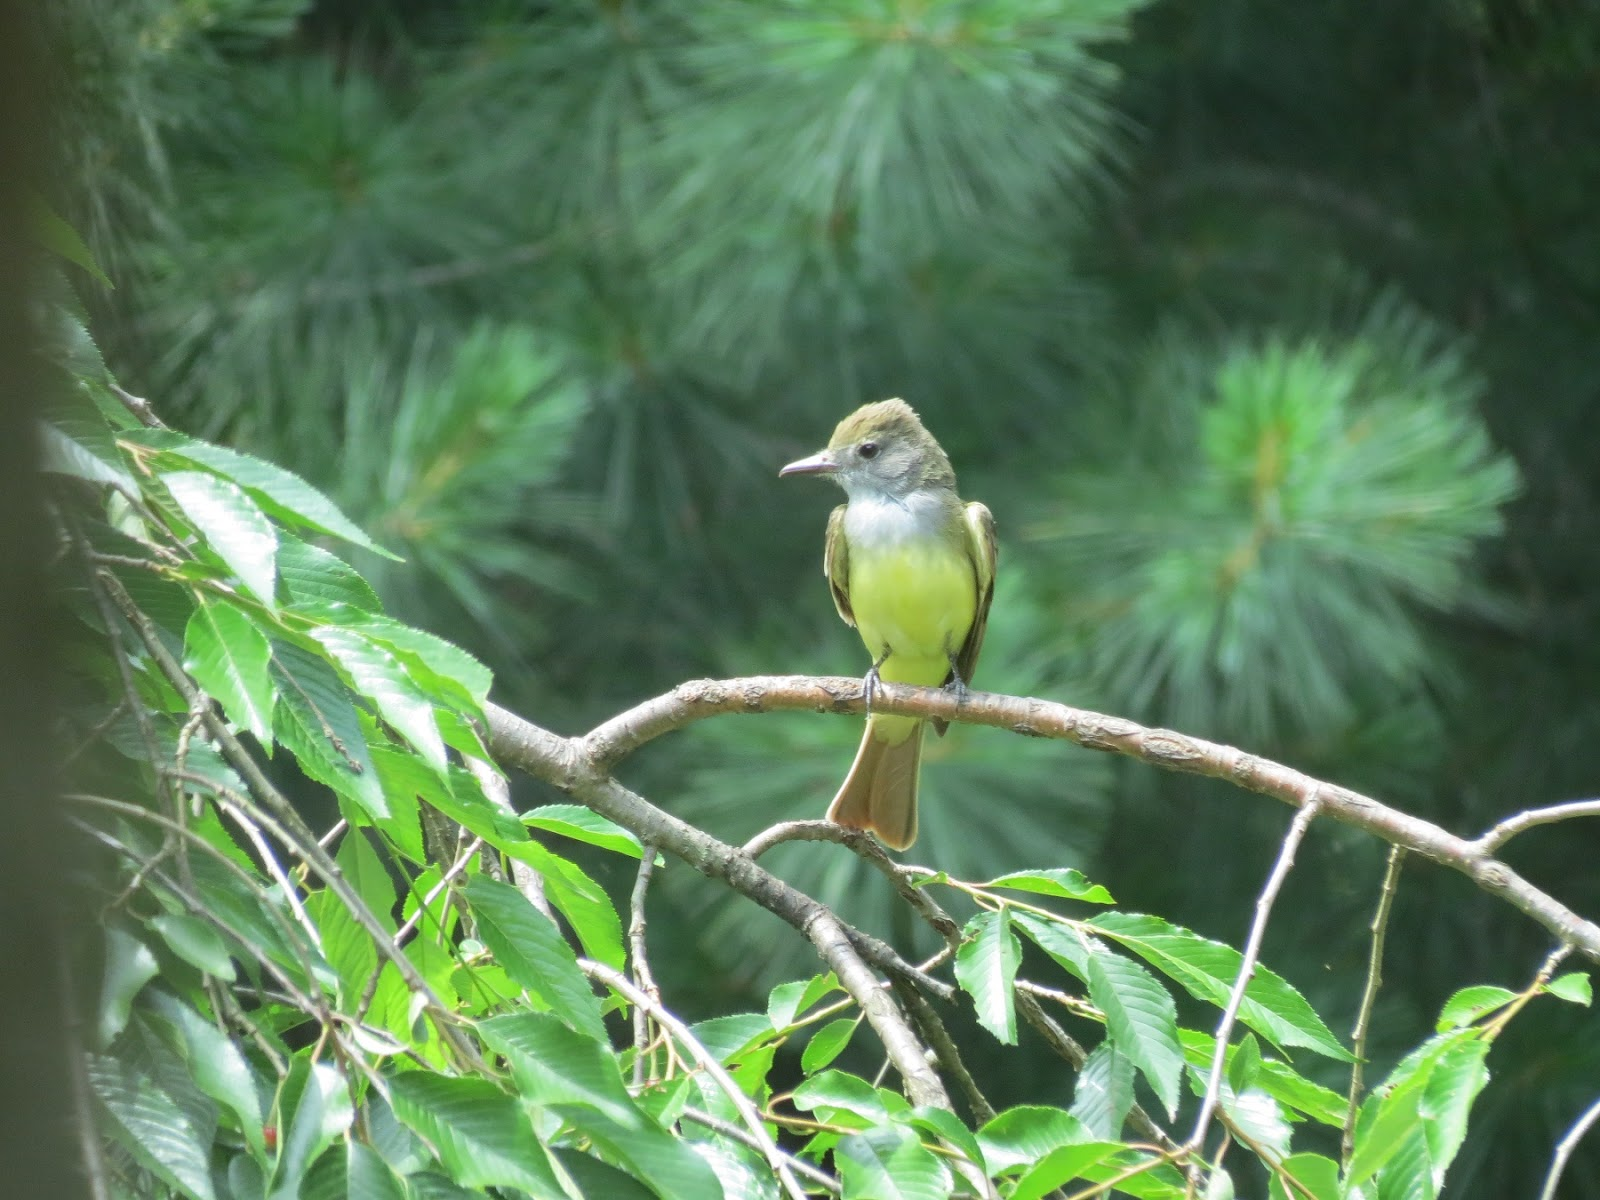 The Flycatcher Has A Large Head And Crest That Is Not Always Prominent This Bird Also Bright Lemon Yellow Belly